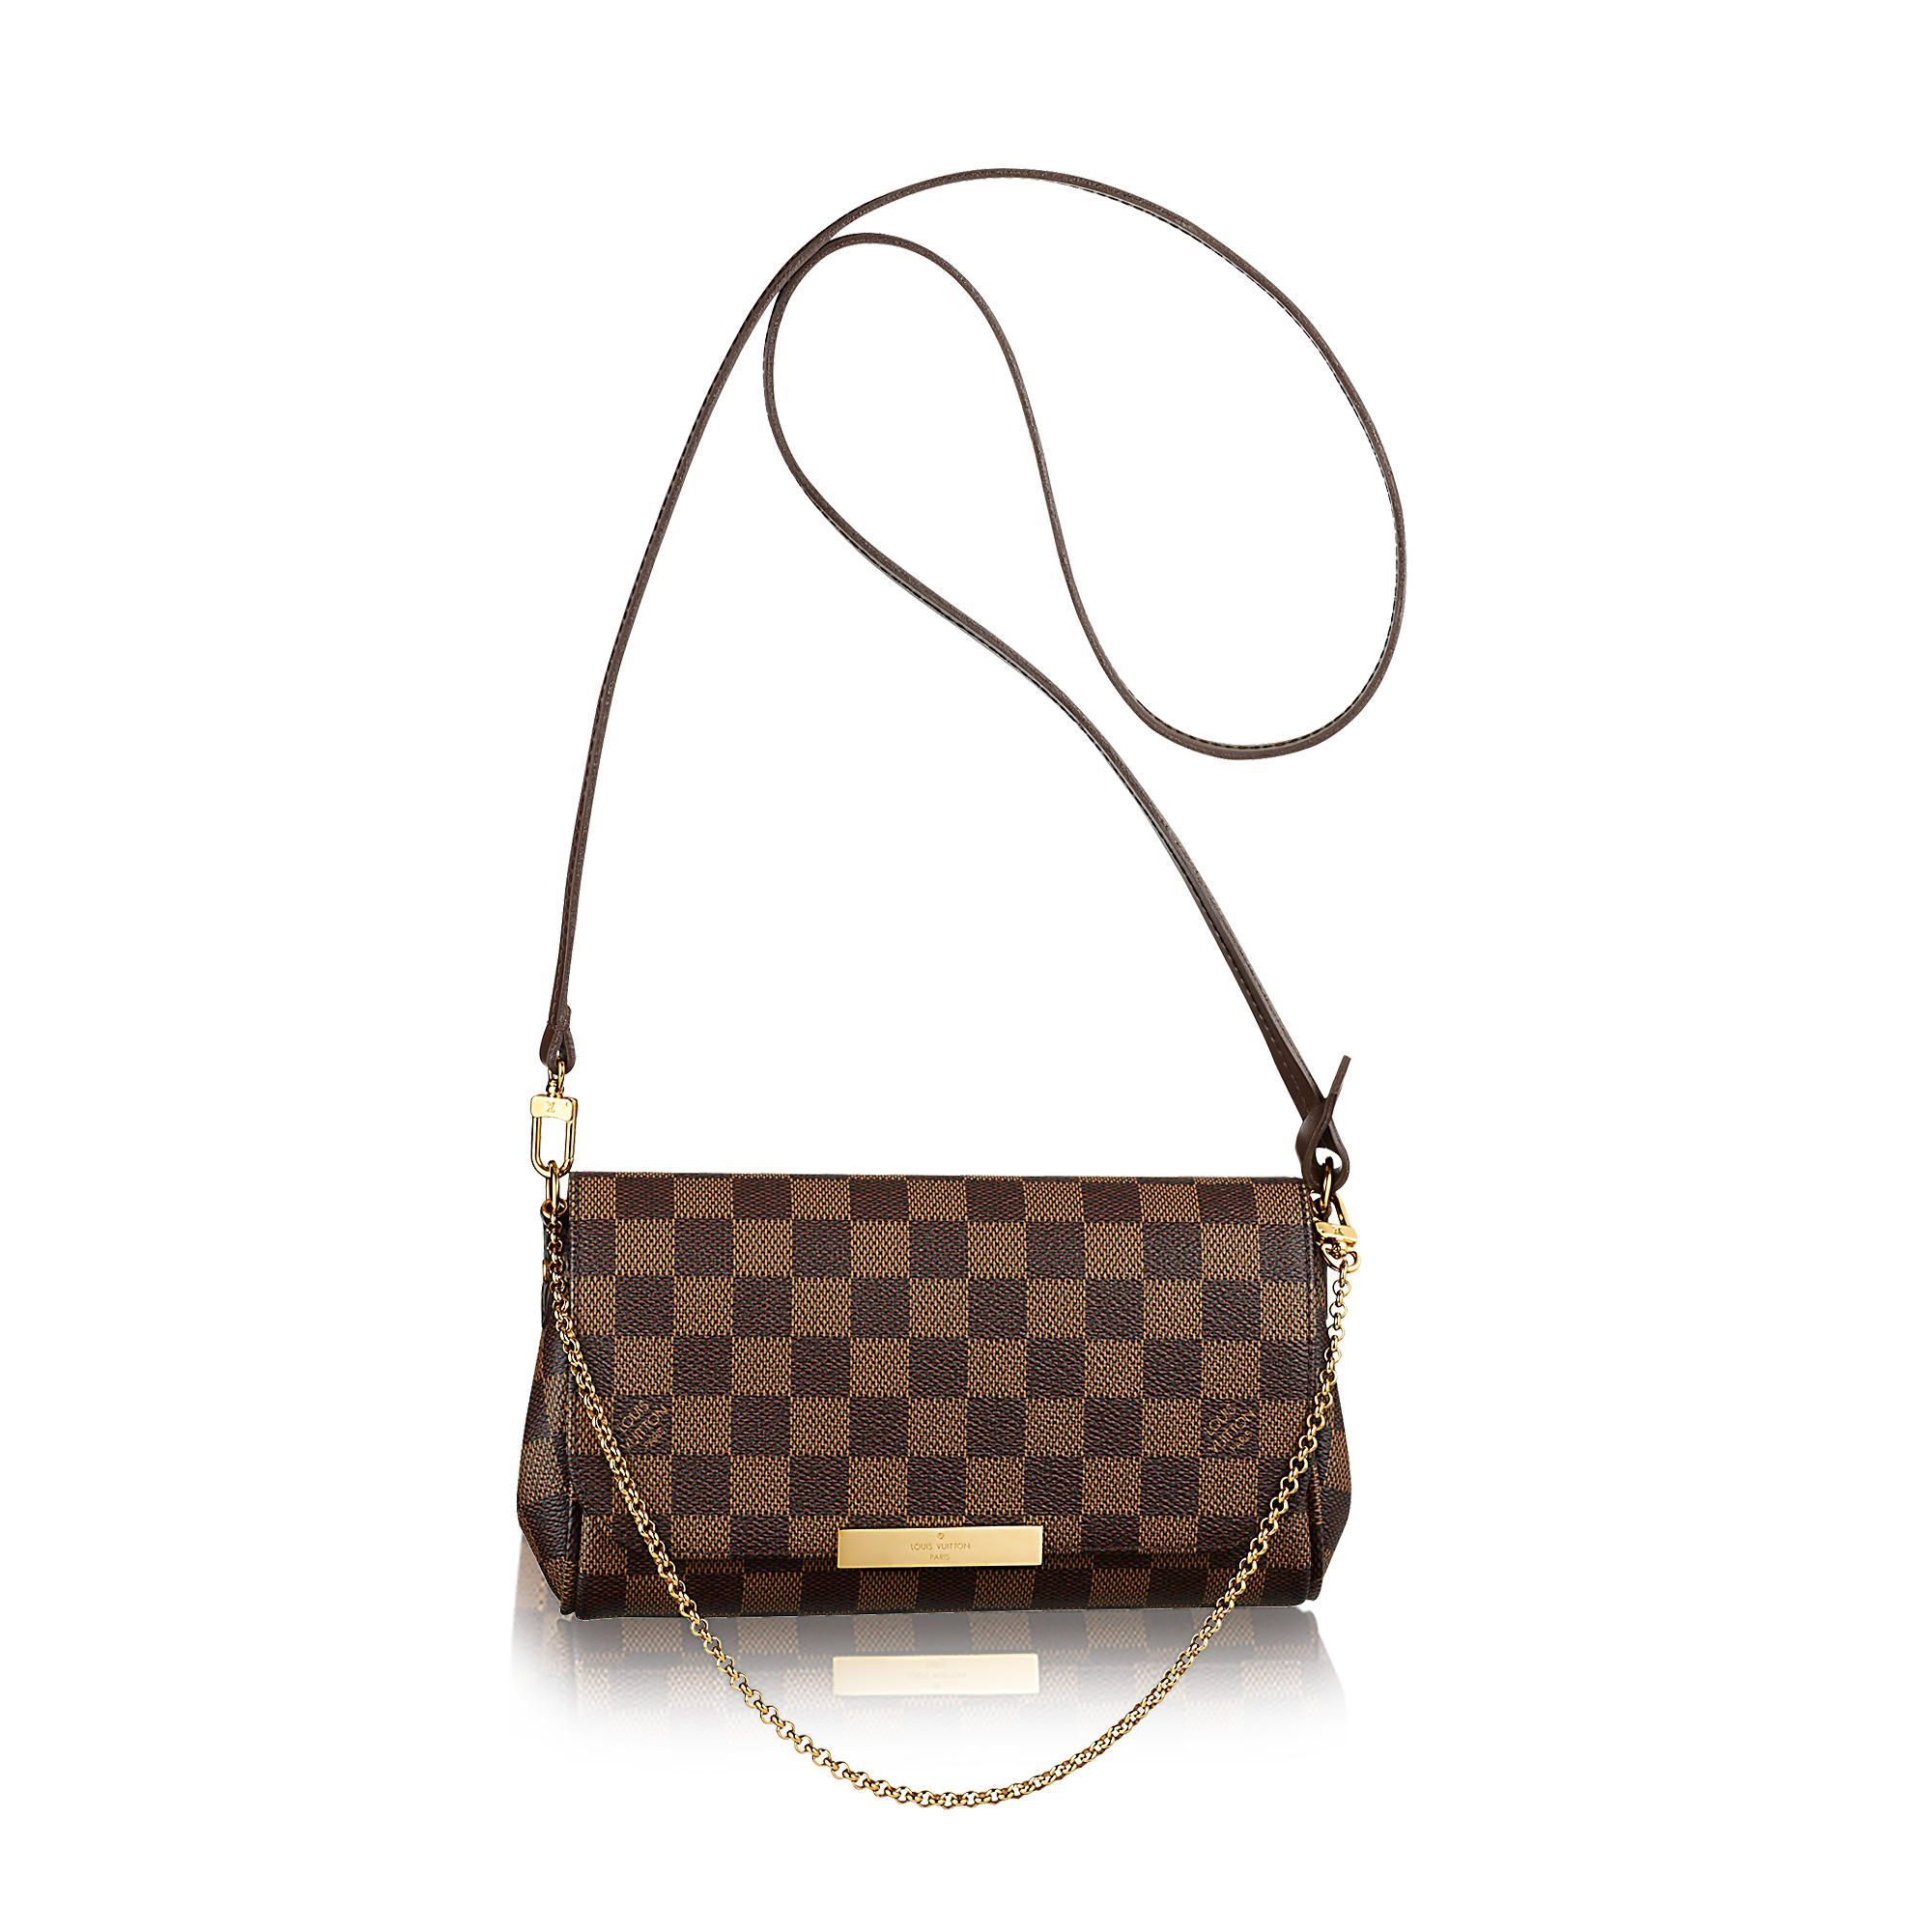 From Philip Louis Vuitton Favorite PM via Louis Vuitton I need a new  crossbody from Santa  ) 290eae1199bdc